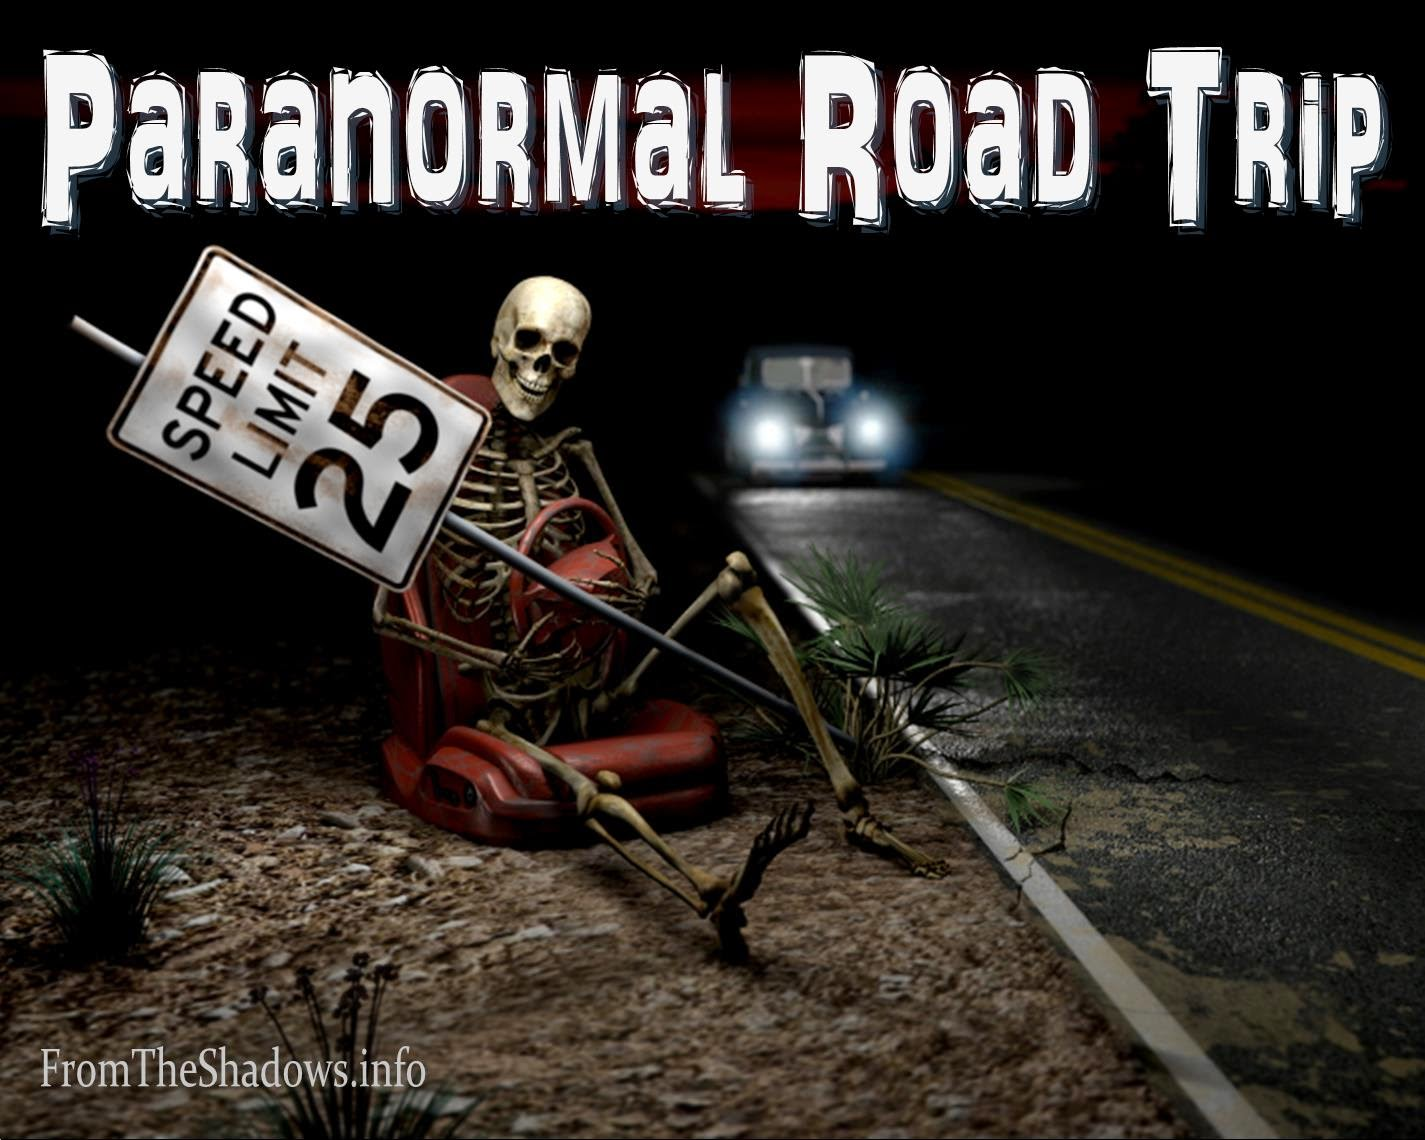 Paranormal Road Trip: Destination Dunnsmouth with Daryl Gregory